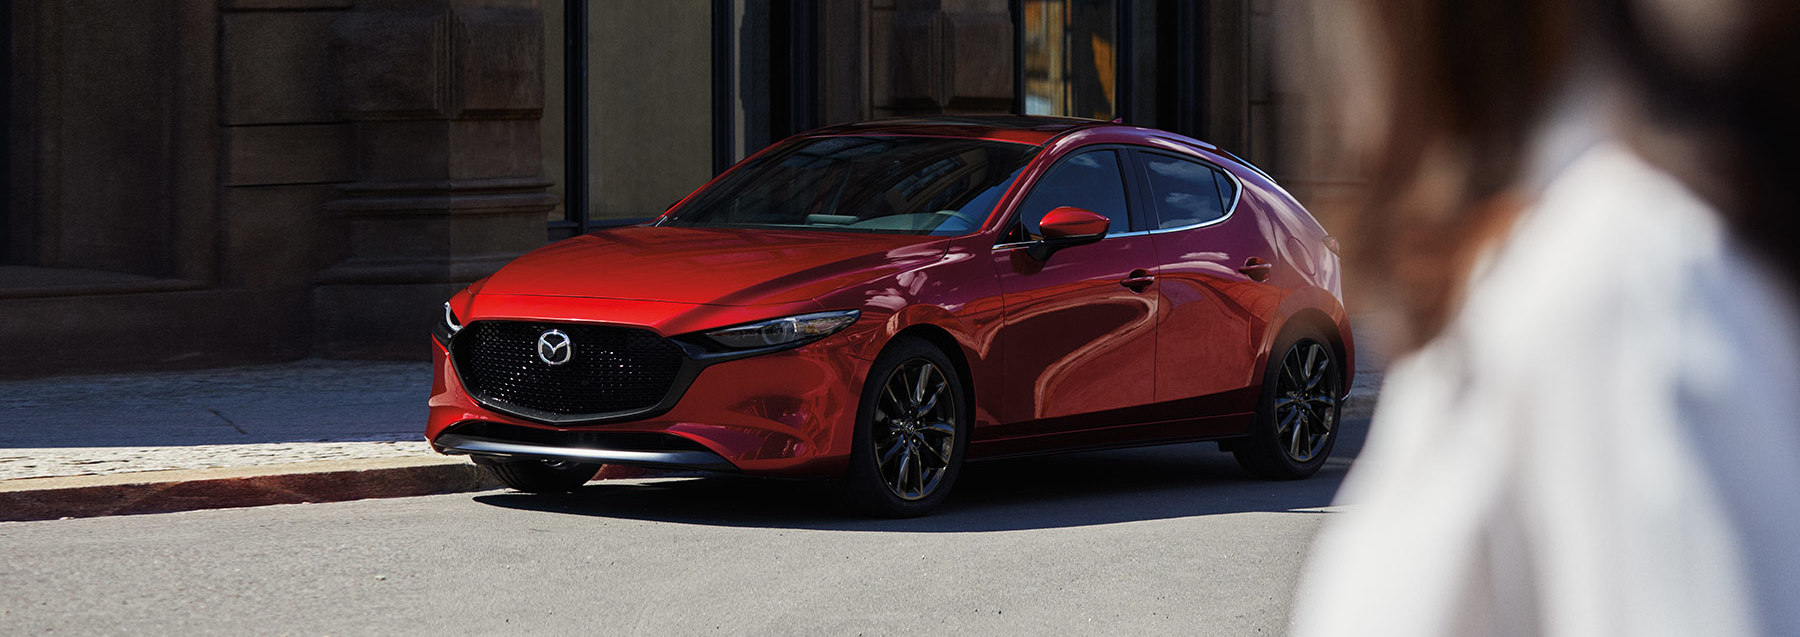 2020 MAZDA3 Hatchback for Sale near Cibolo, TX